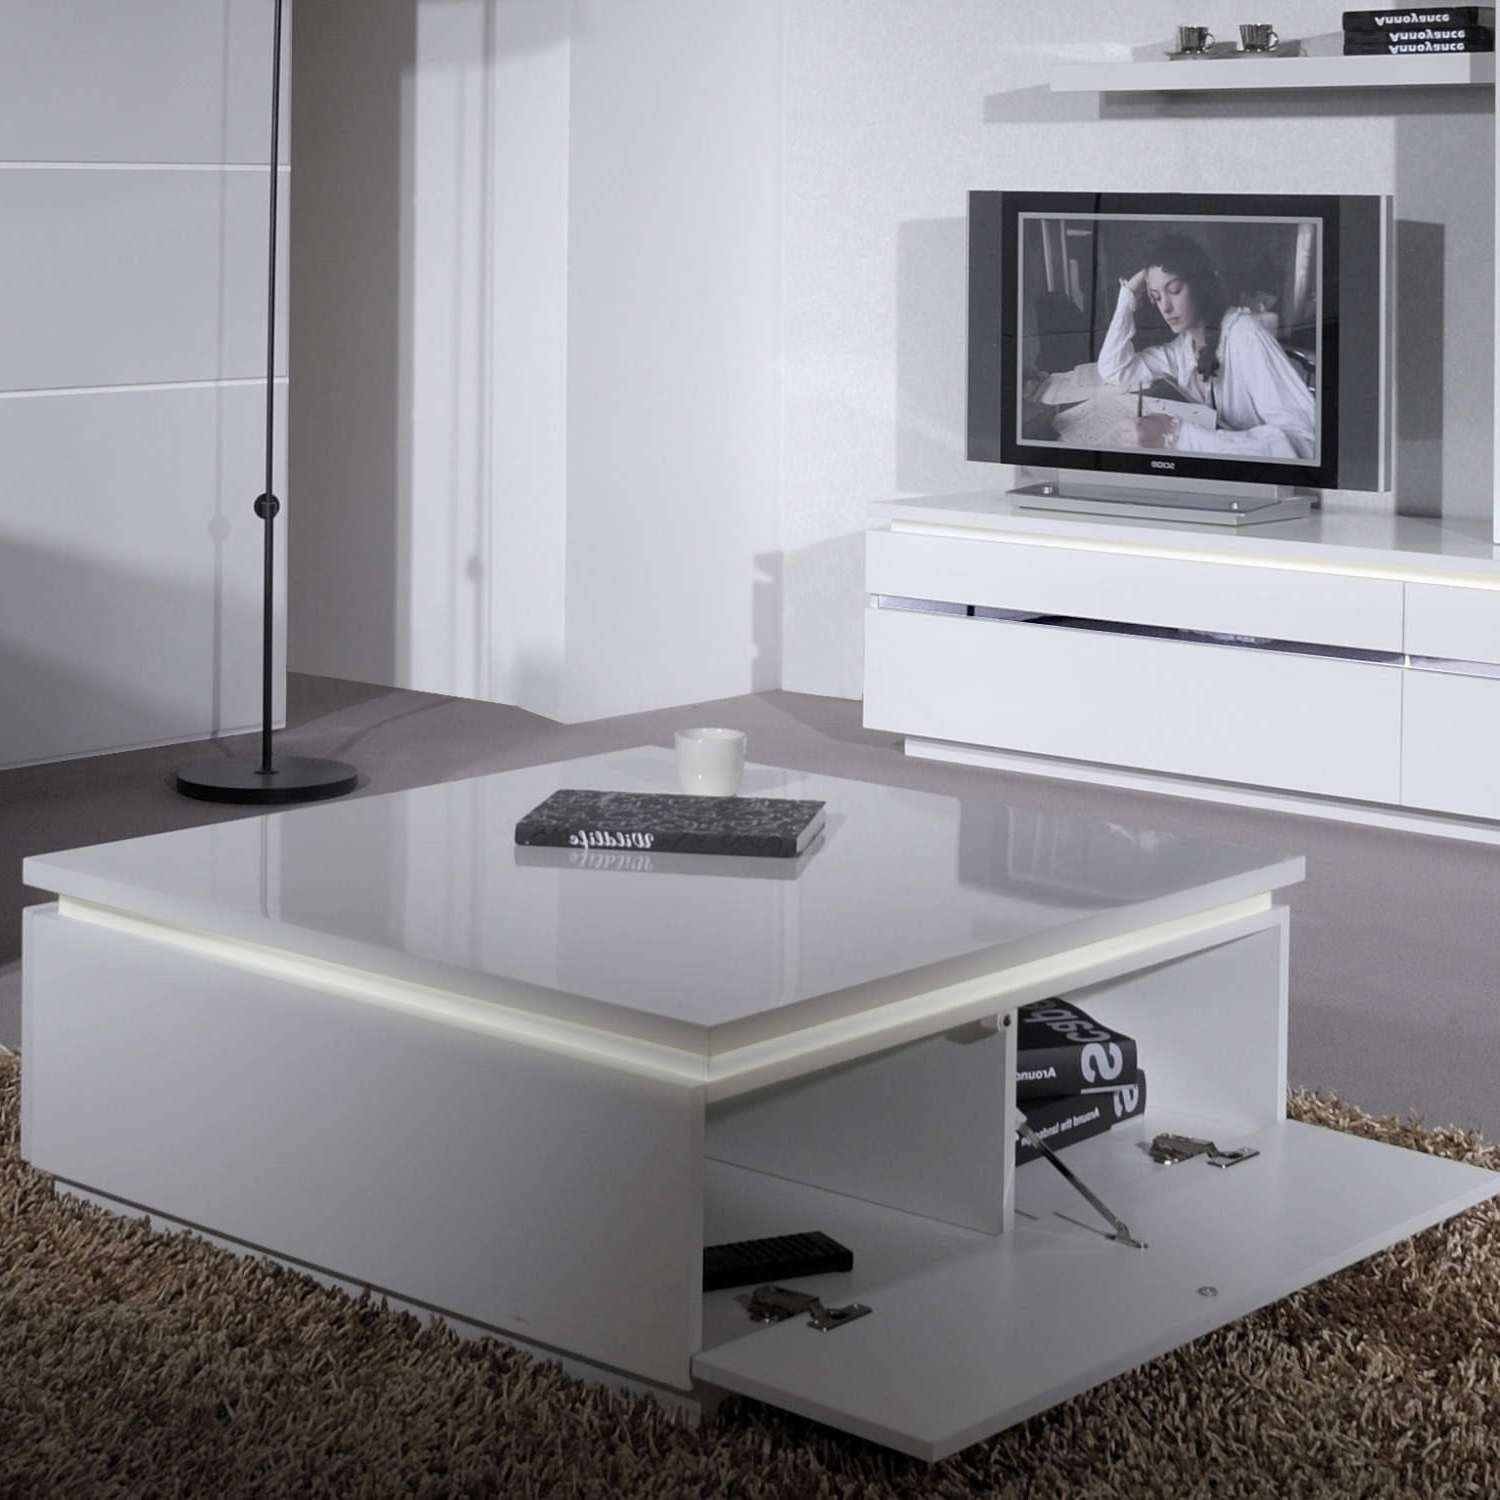 2018 Square White Coffee Tables Inside Coffee Tables : Modern White Square Coffee Table Gallery Images (View 1 of 20)